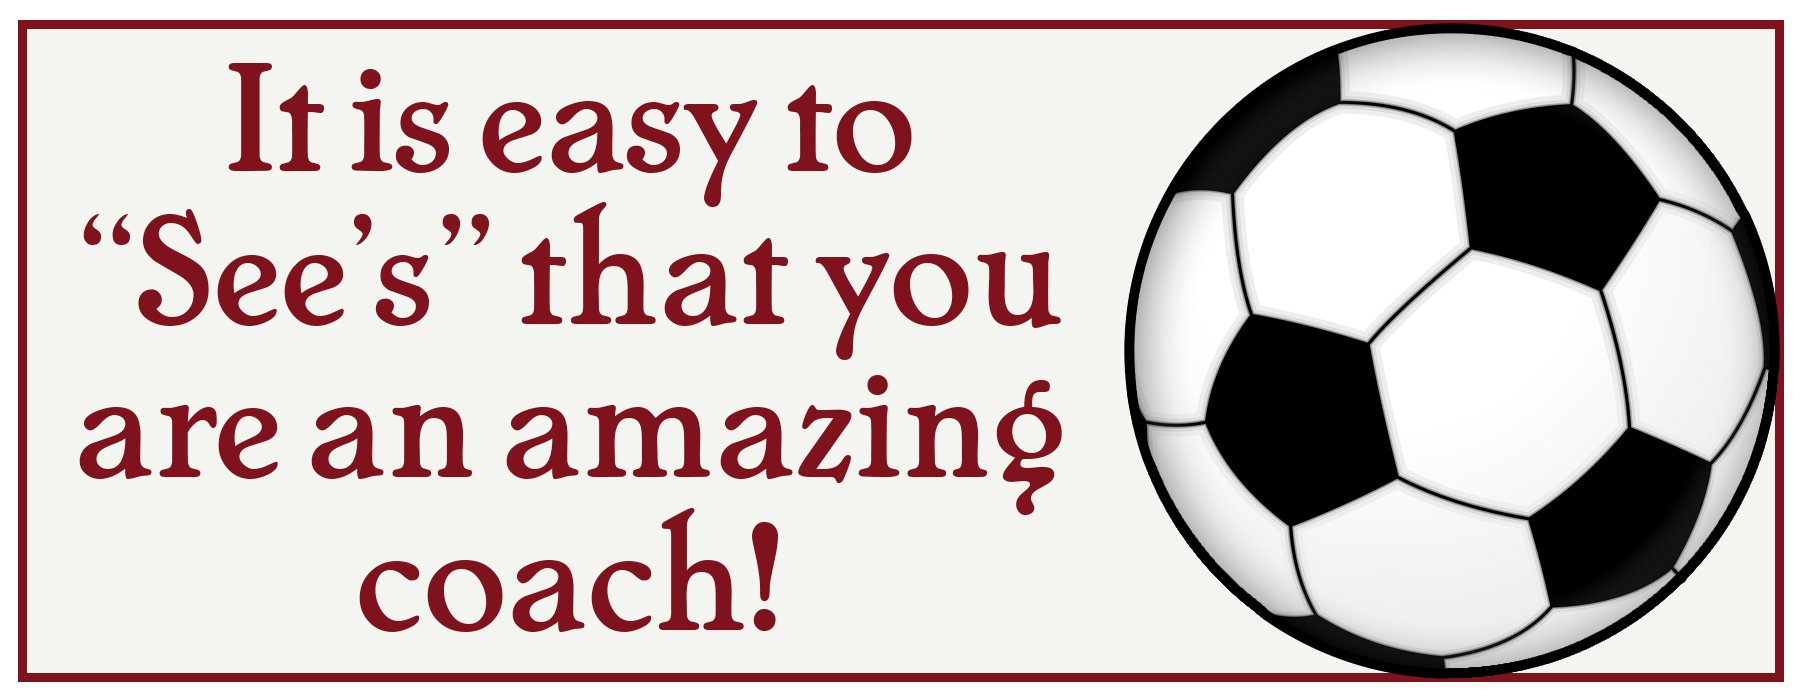 Download Free Soccer Coach Appreciation Gift Printable  sc 1 st  Jonesing2Create & Seeu0027s Chocolate Soccer Coach Appreciation Gift Idea - Jonesing2Create